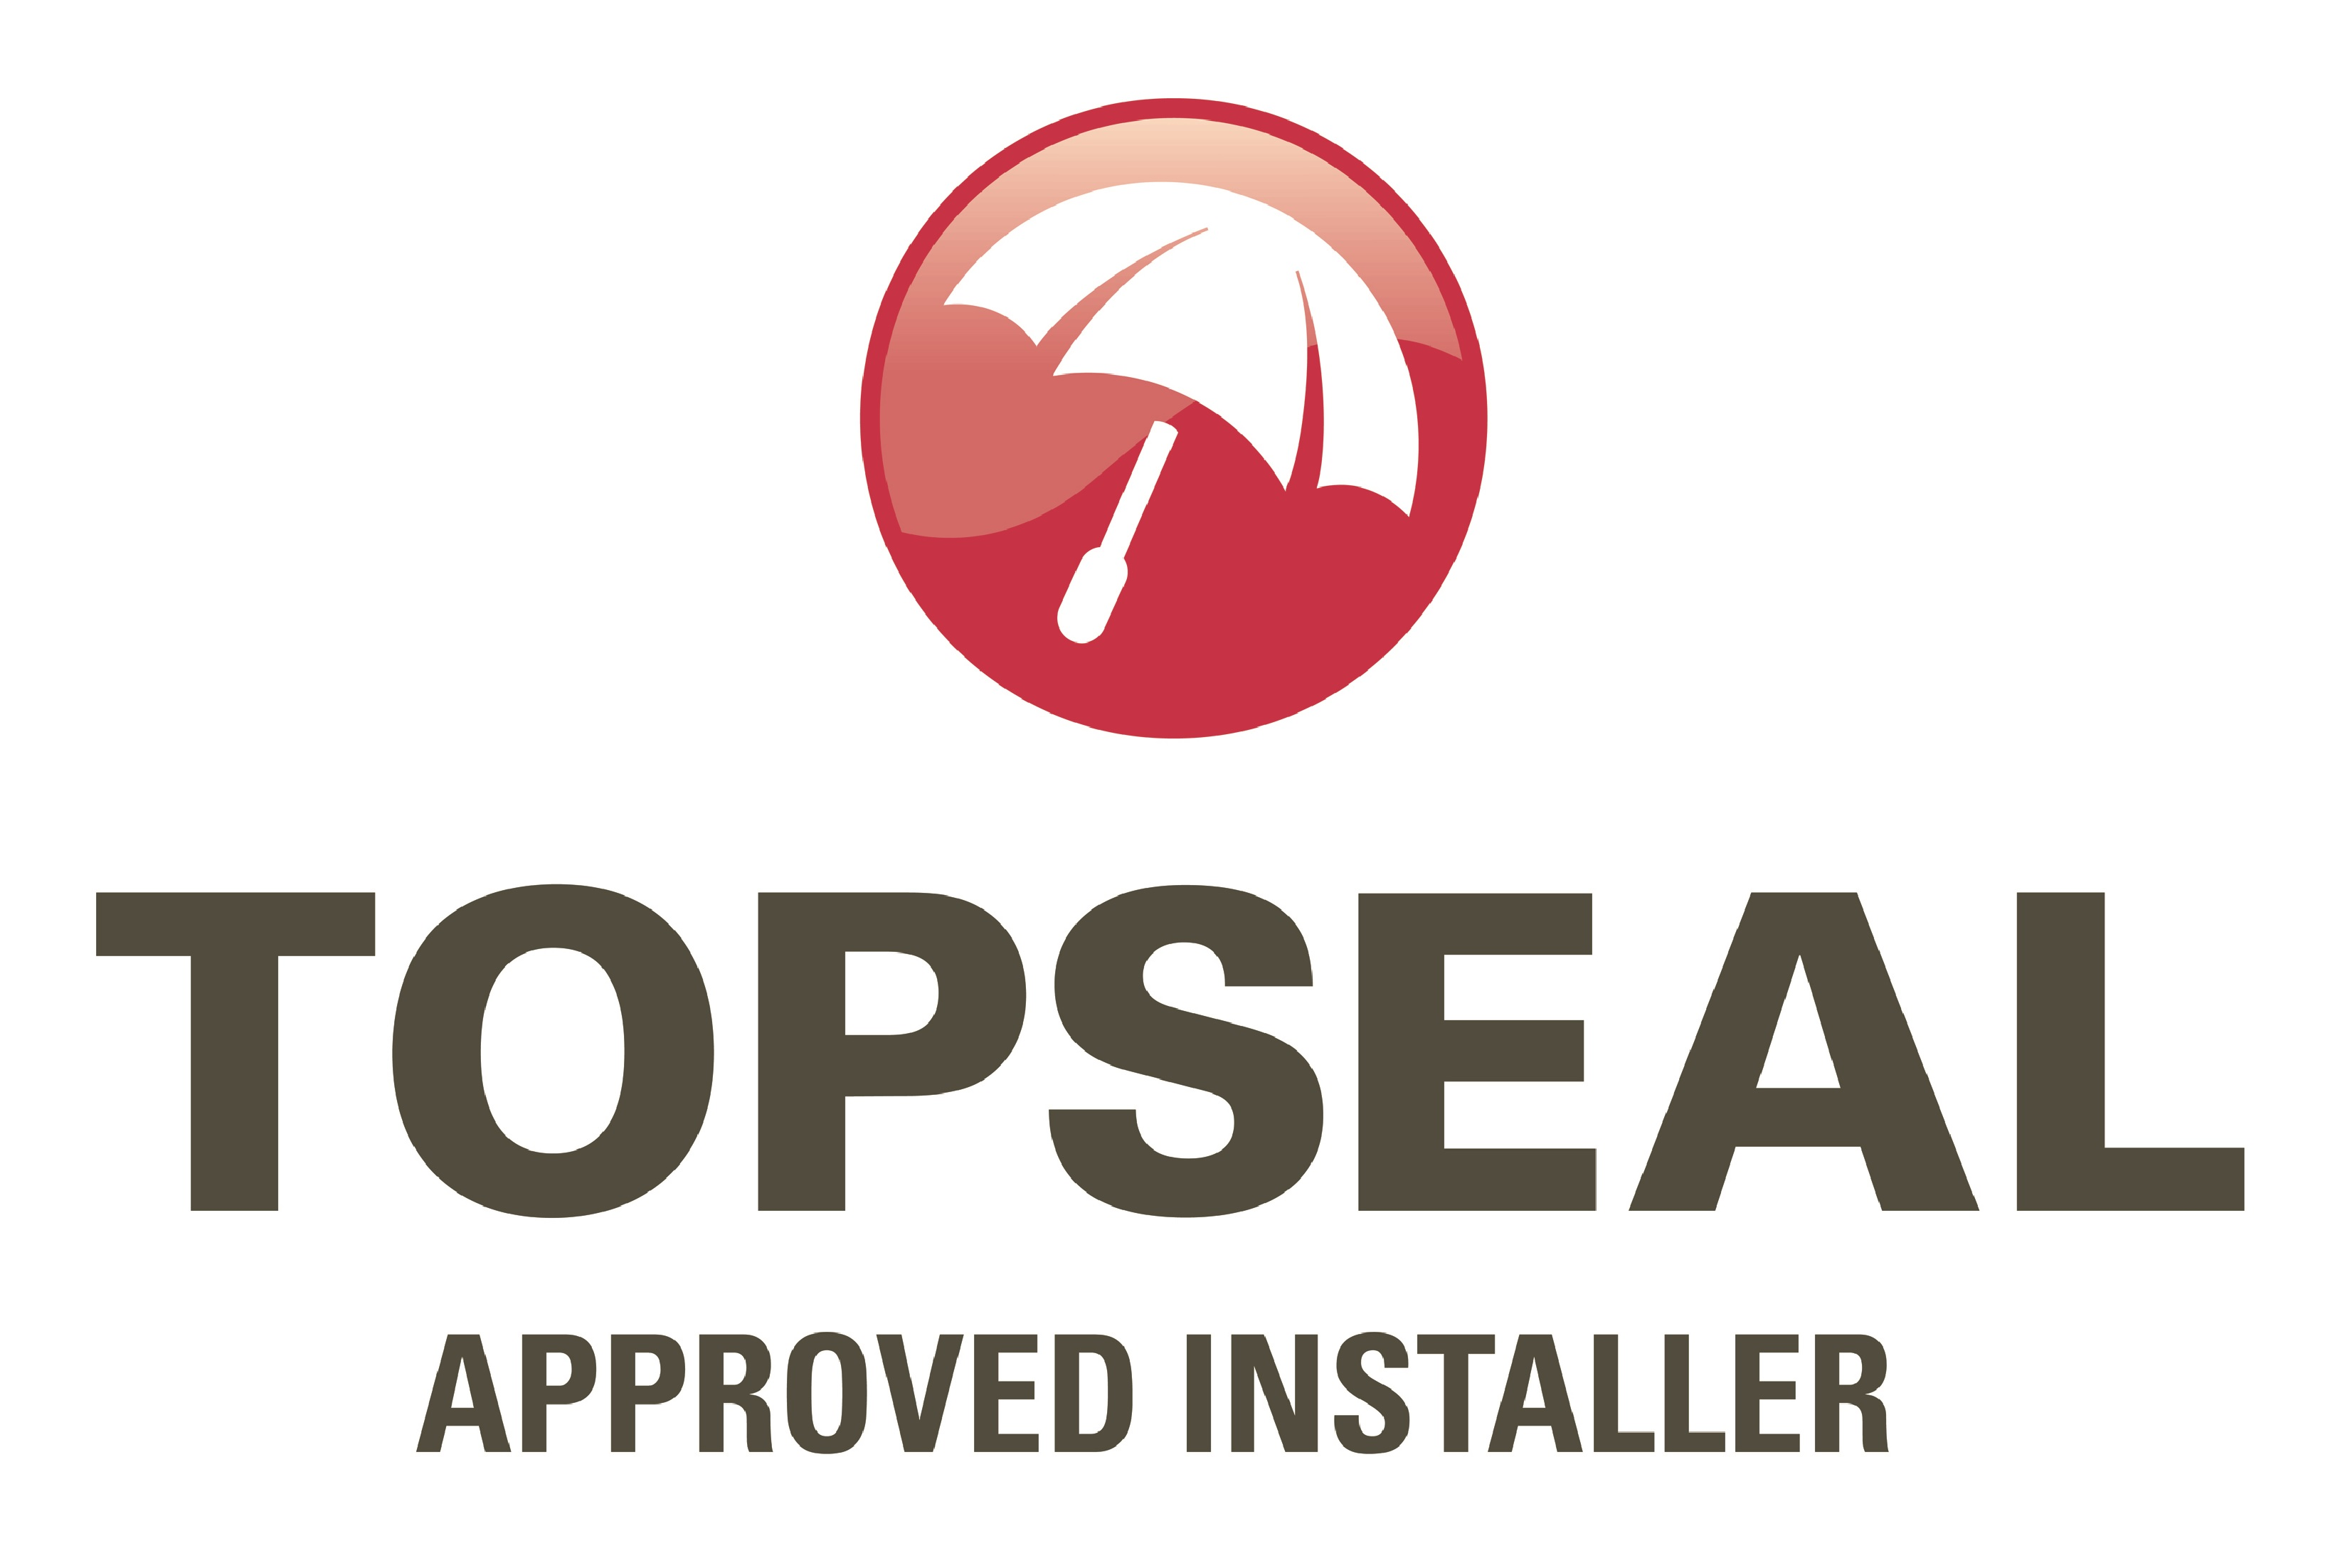 topseal approved installer logo peter dodds